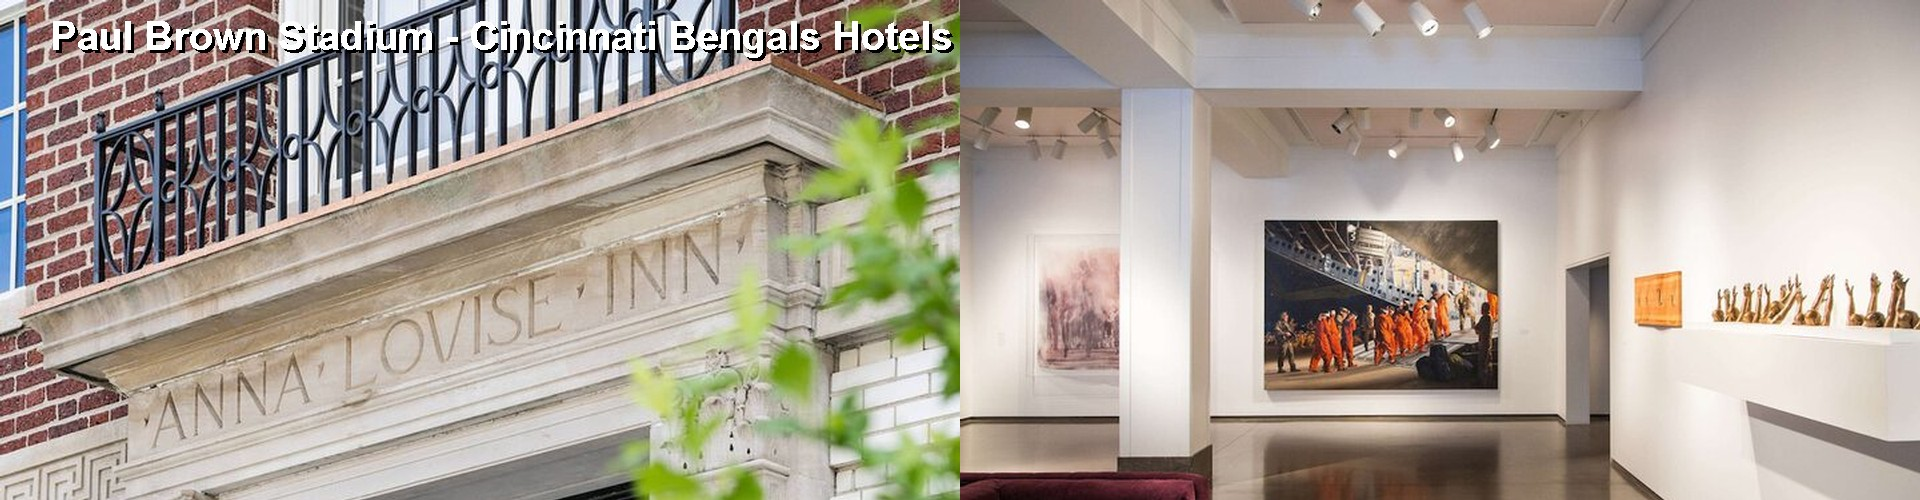 5 Best Hotels near Paul Brown Stadium - Cincinnati Bengals